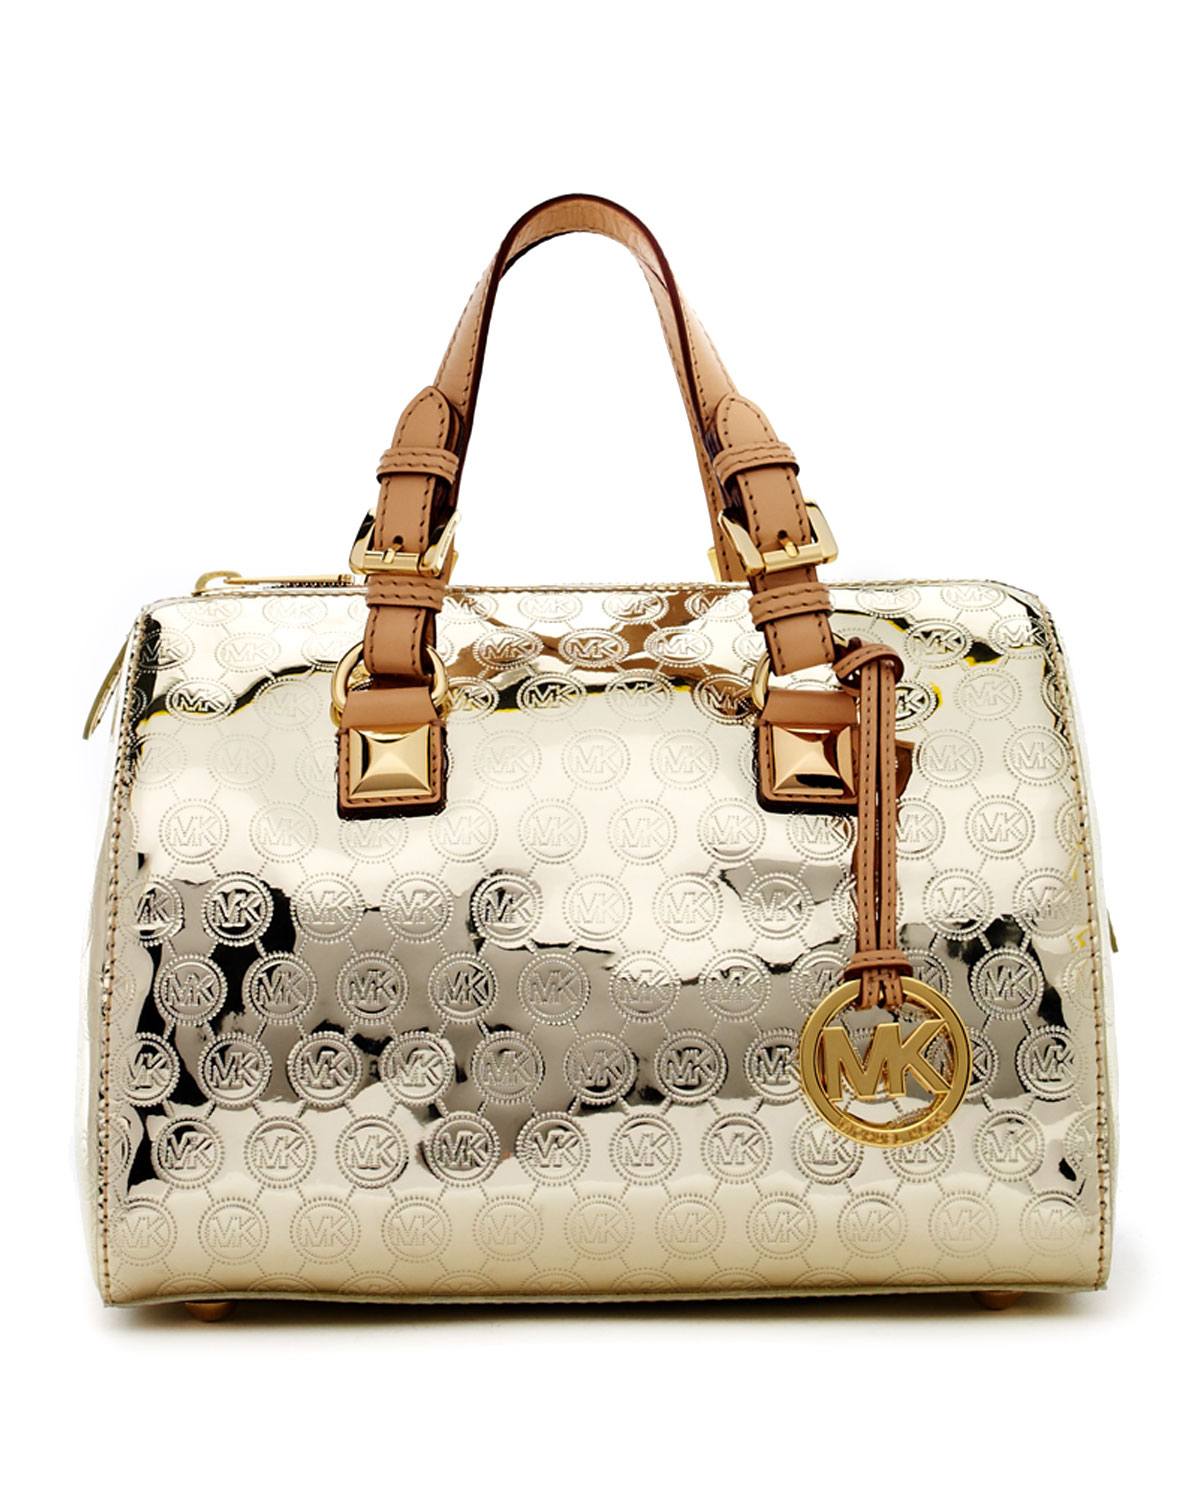 7d3c1f5b550085 Gallery. Previously sold at: Neiman Marcus · Women's Michael Kors Grayson